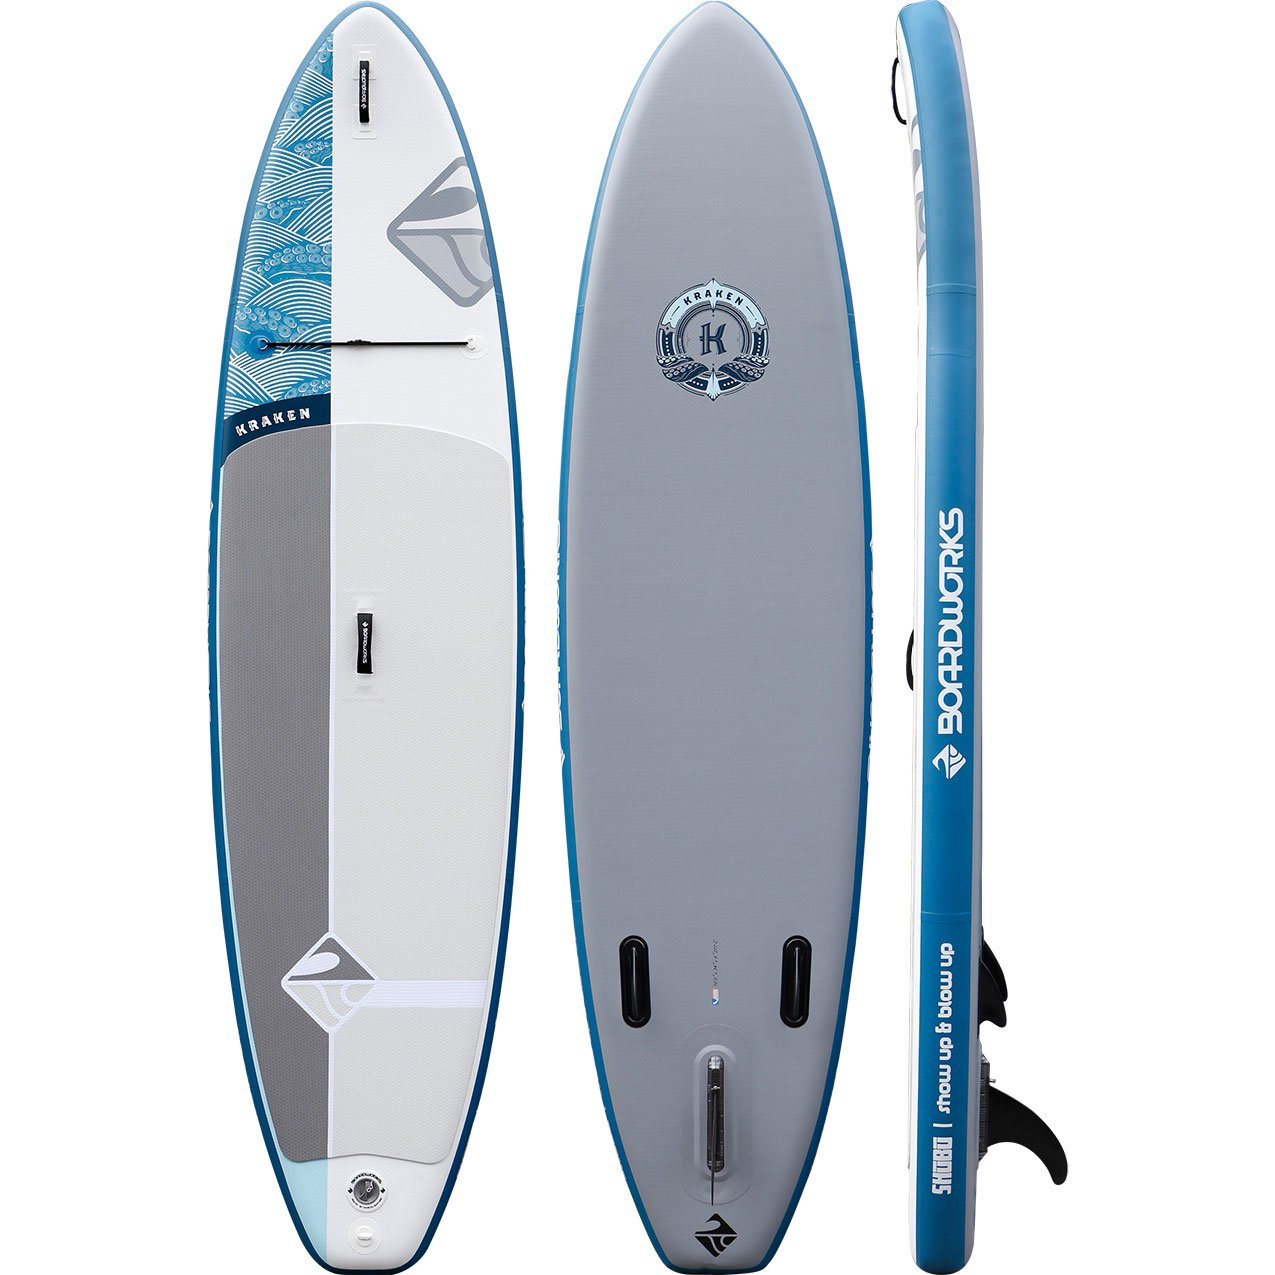 Boardworks SHUBU Kraken 10' Inflatable Stand-Up Paddle Board (SUP) by Boardworks